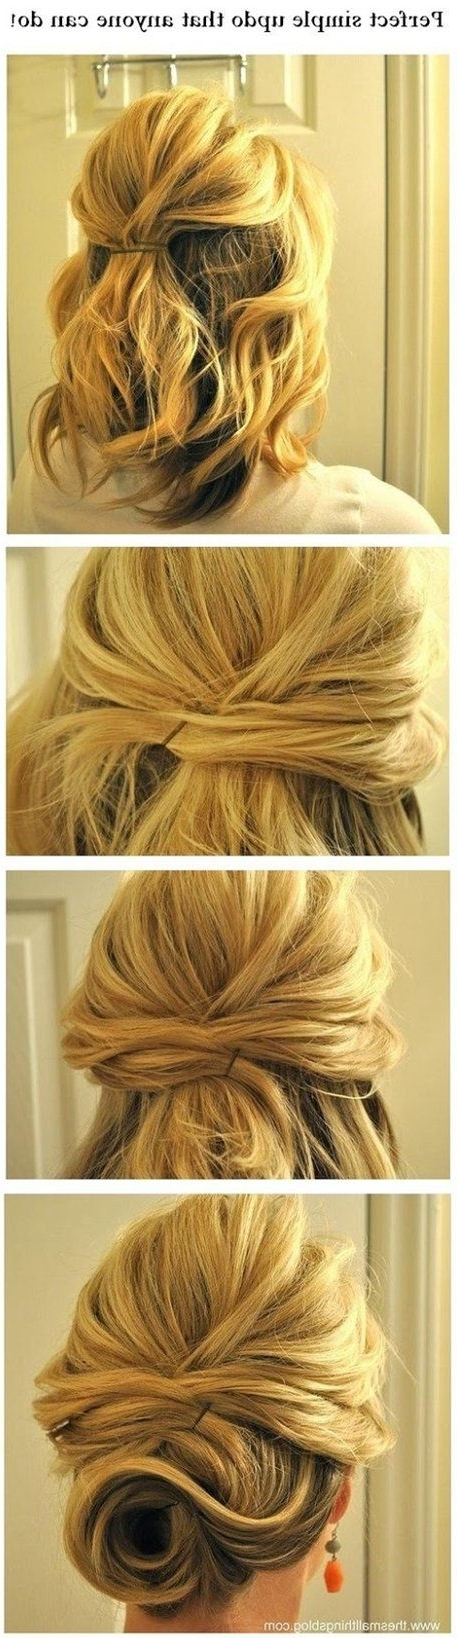 25 Tips And Tricks To Get The Perfect Bun | Shoulder Length Hair With Simple Wedding Hairstyles For Medium Length Hair (View 13 of 15)